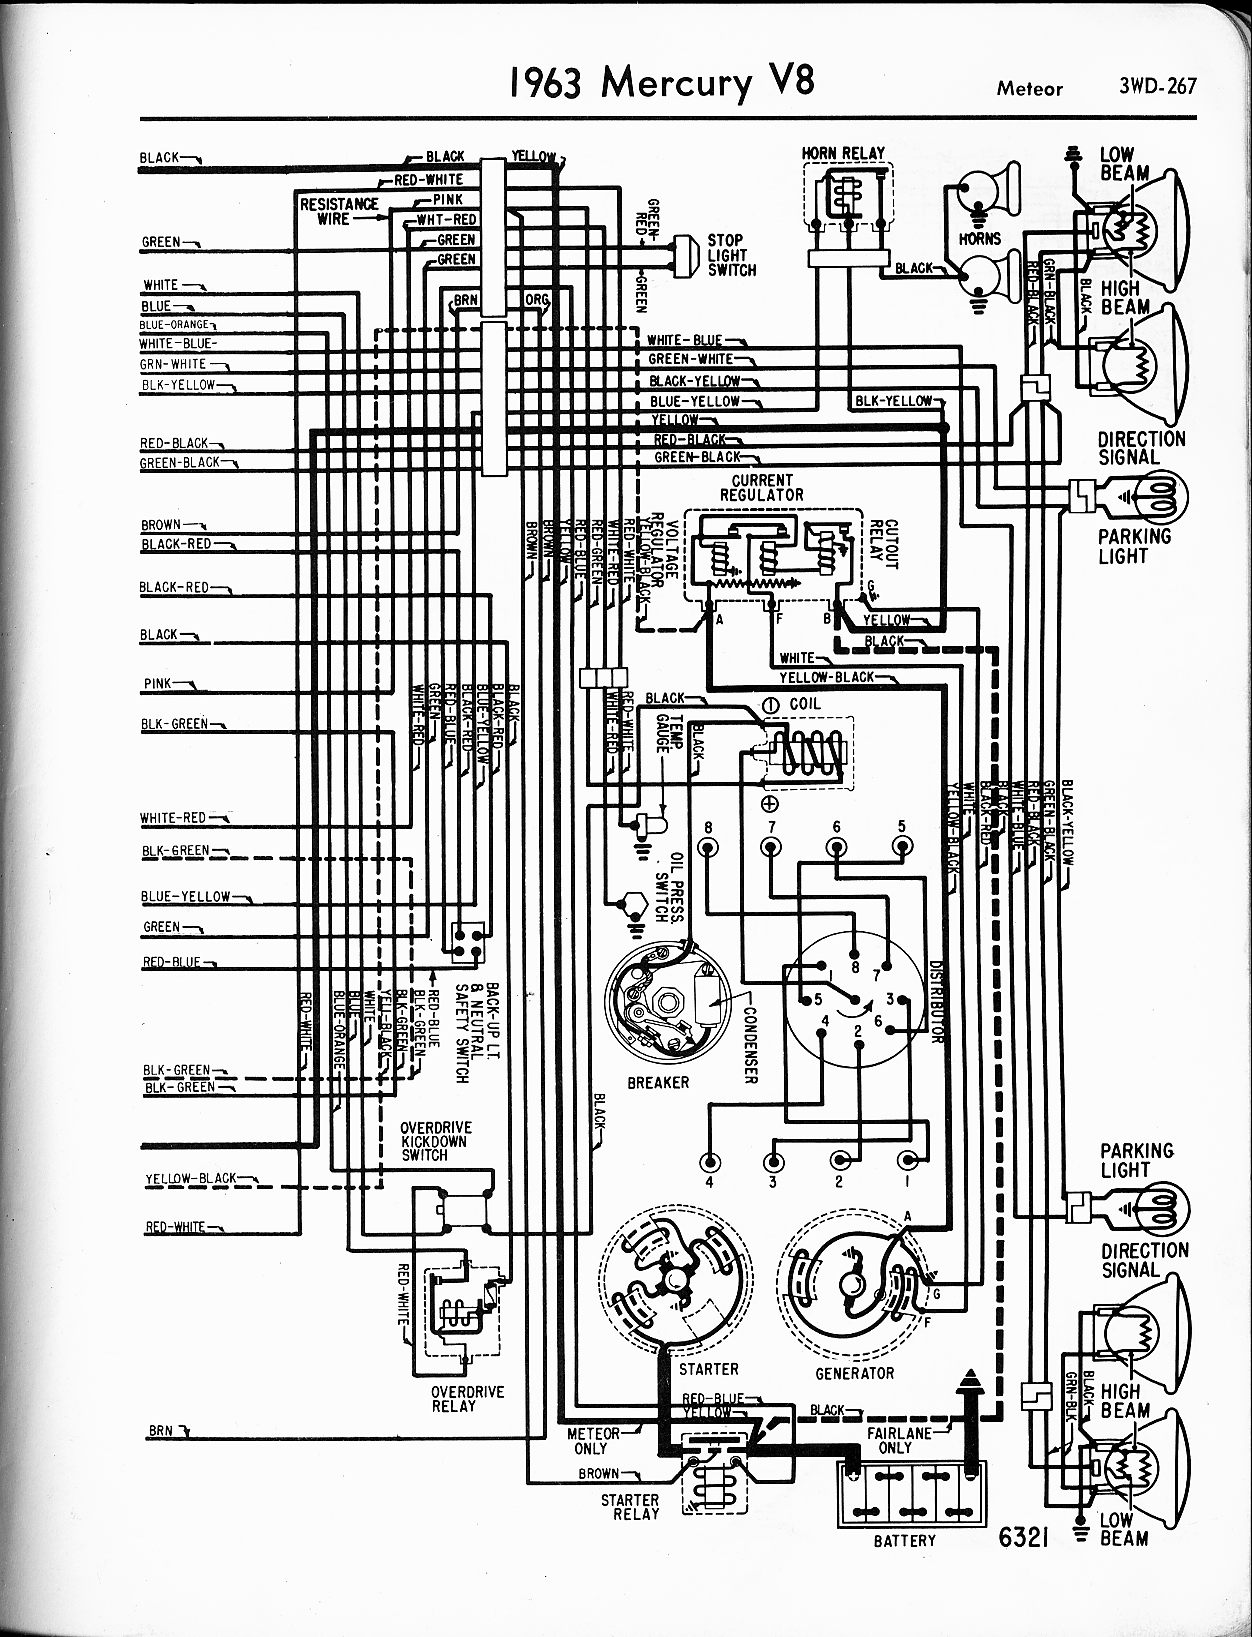 MWire5765 267 mercury wiring diagrams the old car manual project 1963 chevy c10 wiring harness at webbmarketing.co